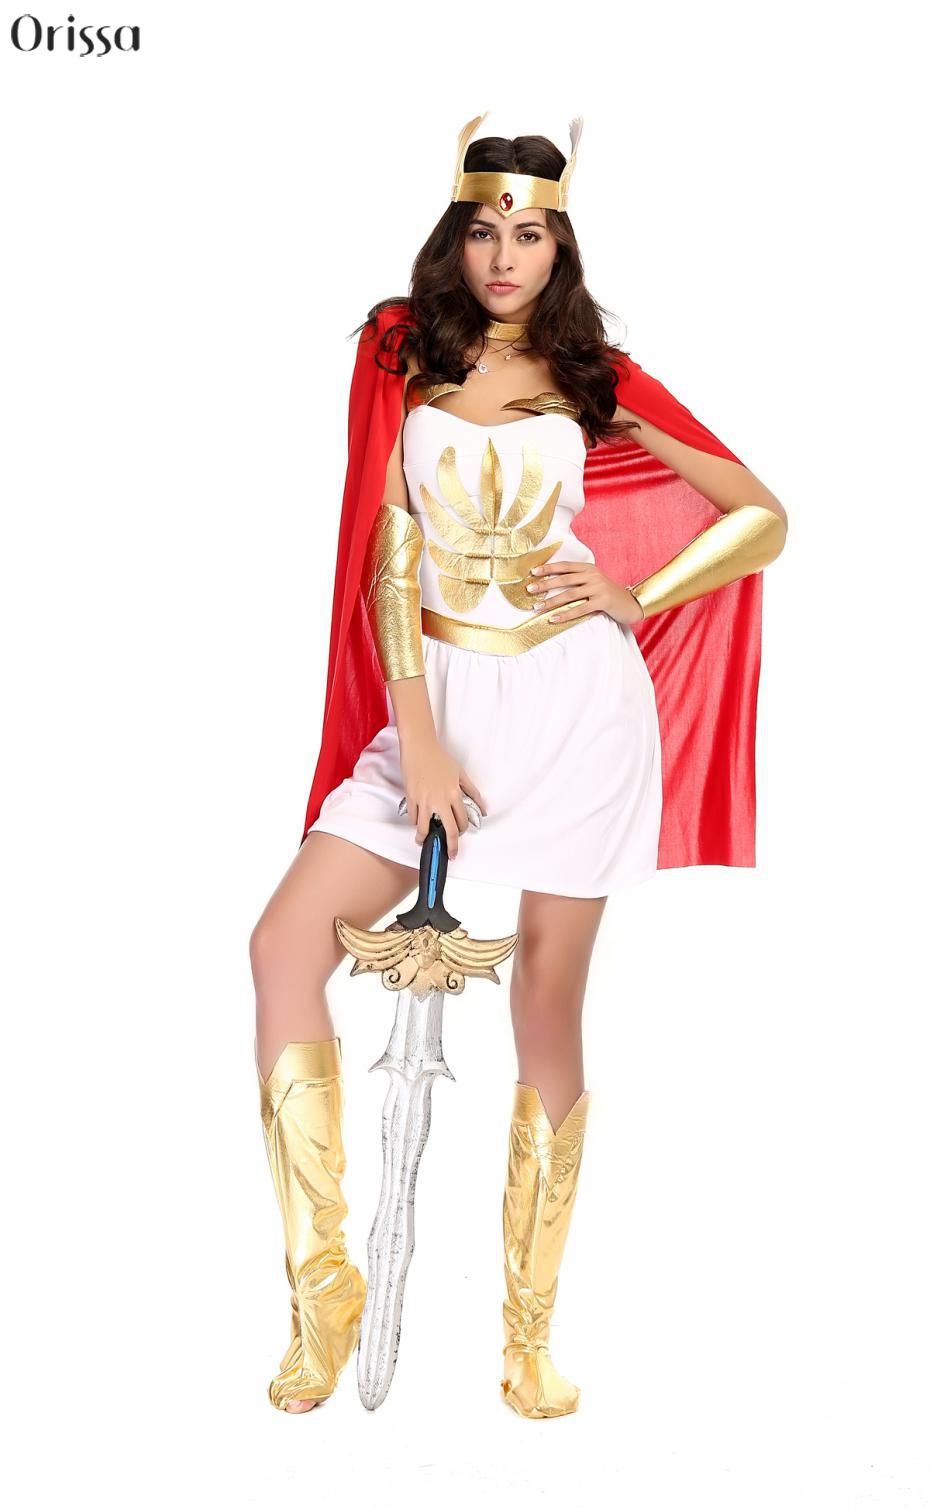 Deluxe Masters Of The Universe She Ra Dress Deluxe 80u0027s Super Shera Fancy Dress Women Halloween Costume Party Costume-in Sexy Costumes from Novelty ...  sc 1 st  AliExpress.com & Deluxe Masters Of The Universe She Ra Dress Deluxe 80u0027s Super Shera ...